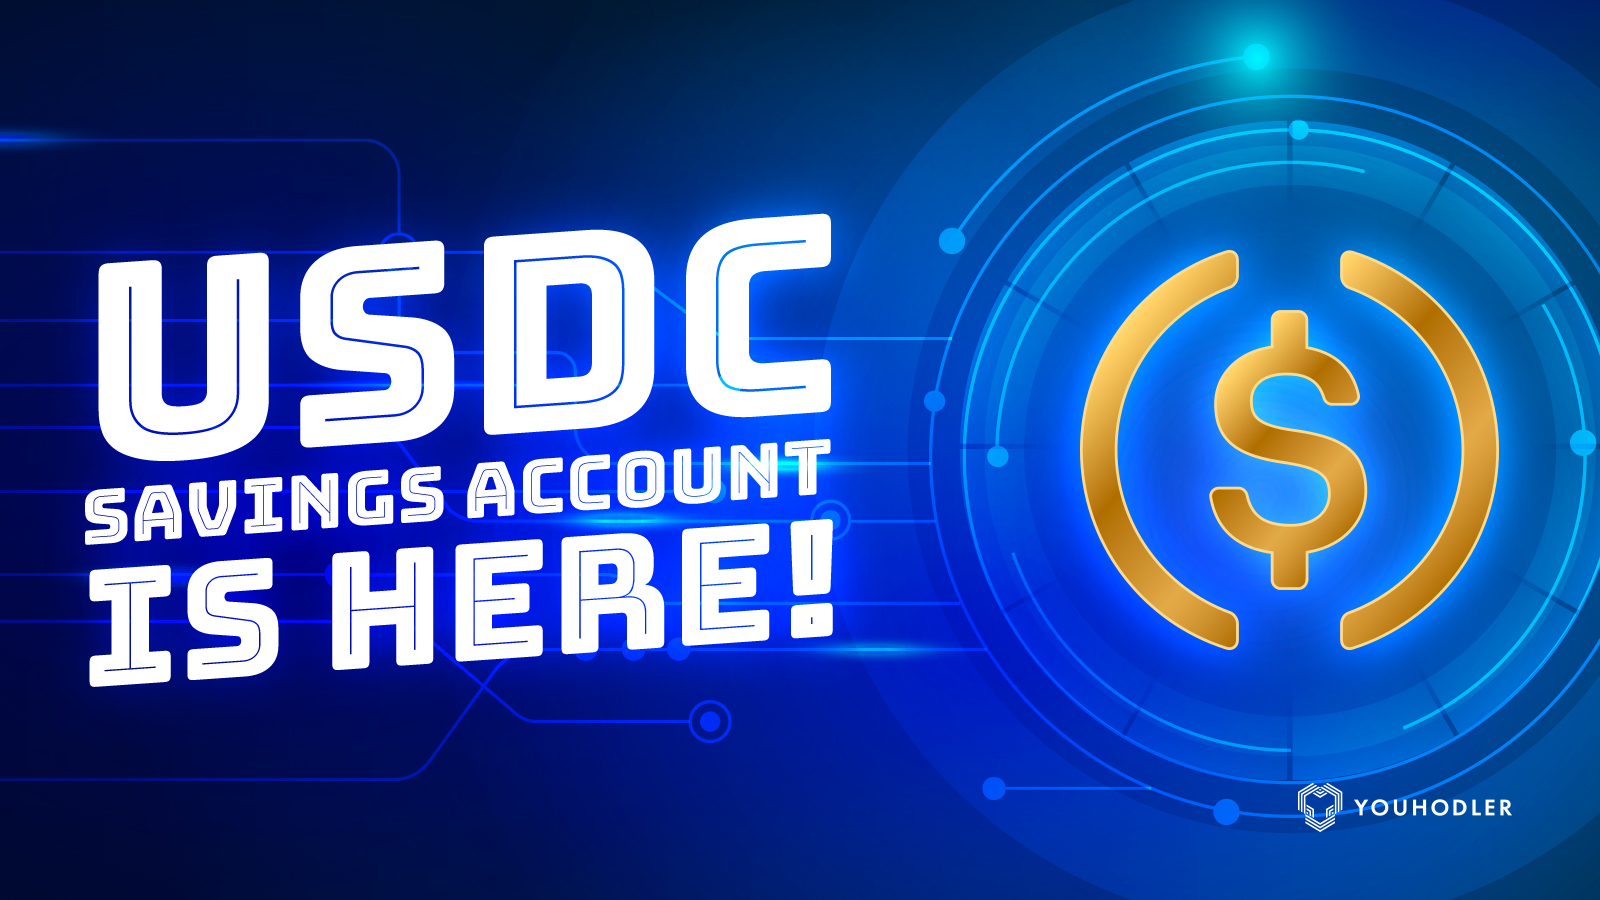 Earn interest on USDC deposits today! USDC Savings Accounts now on YouHodler.